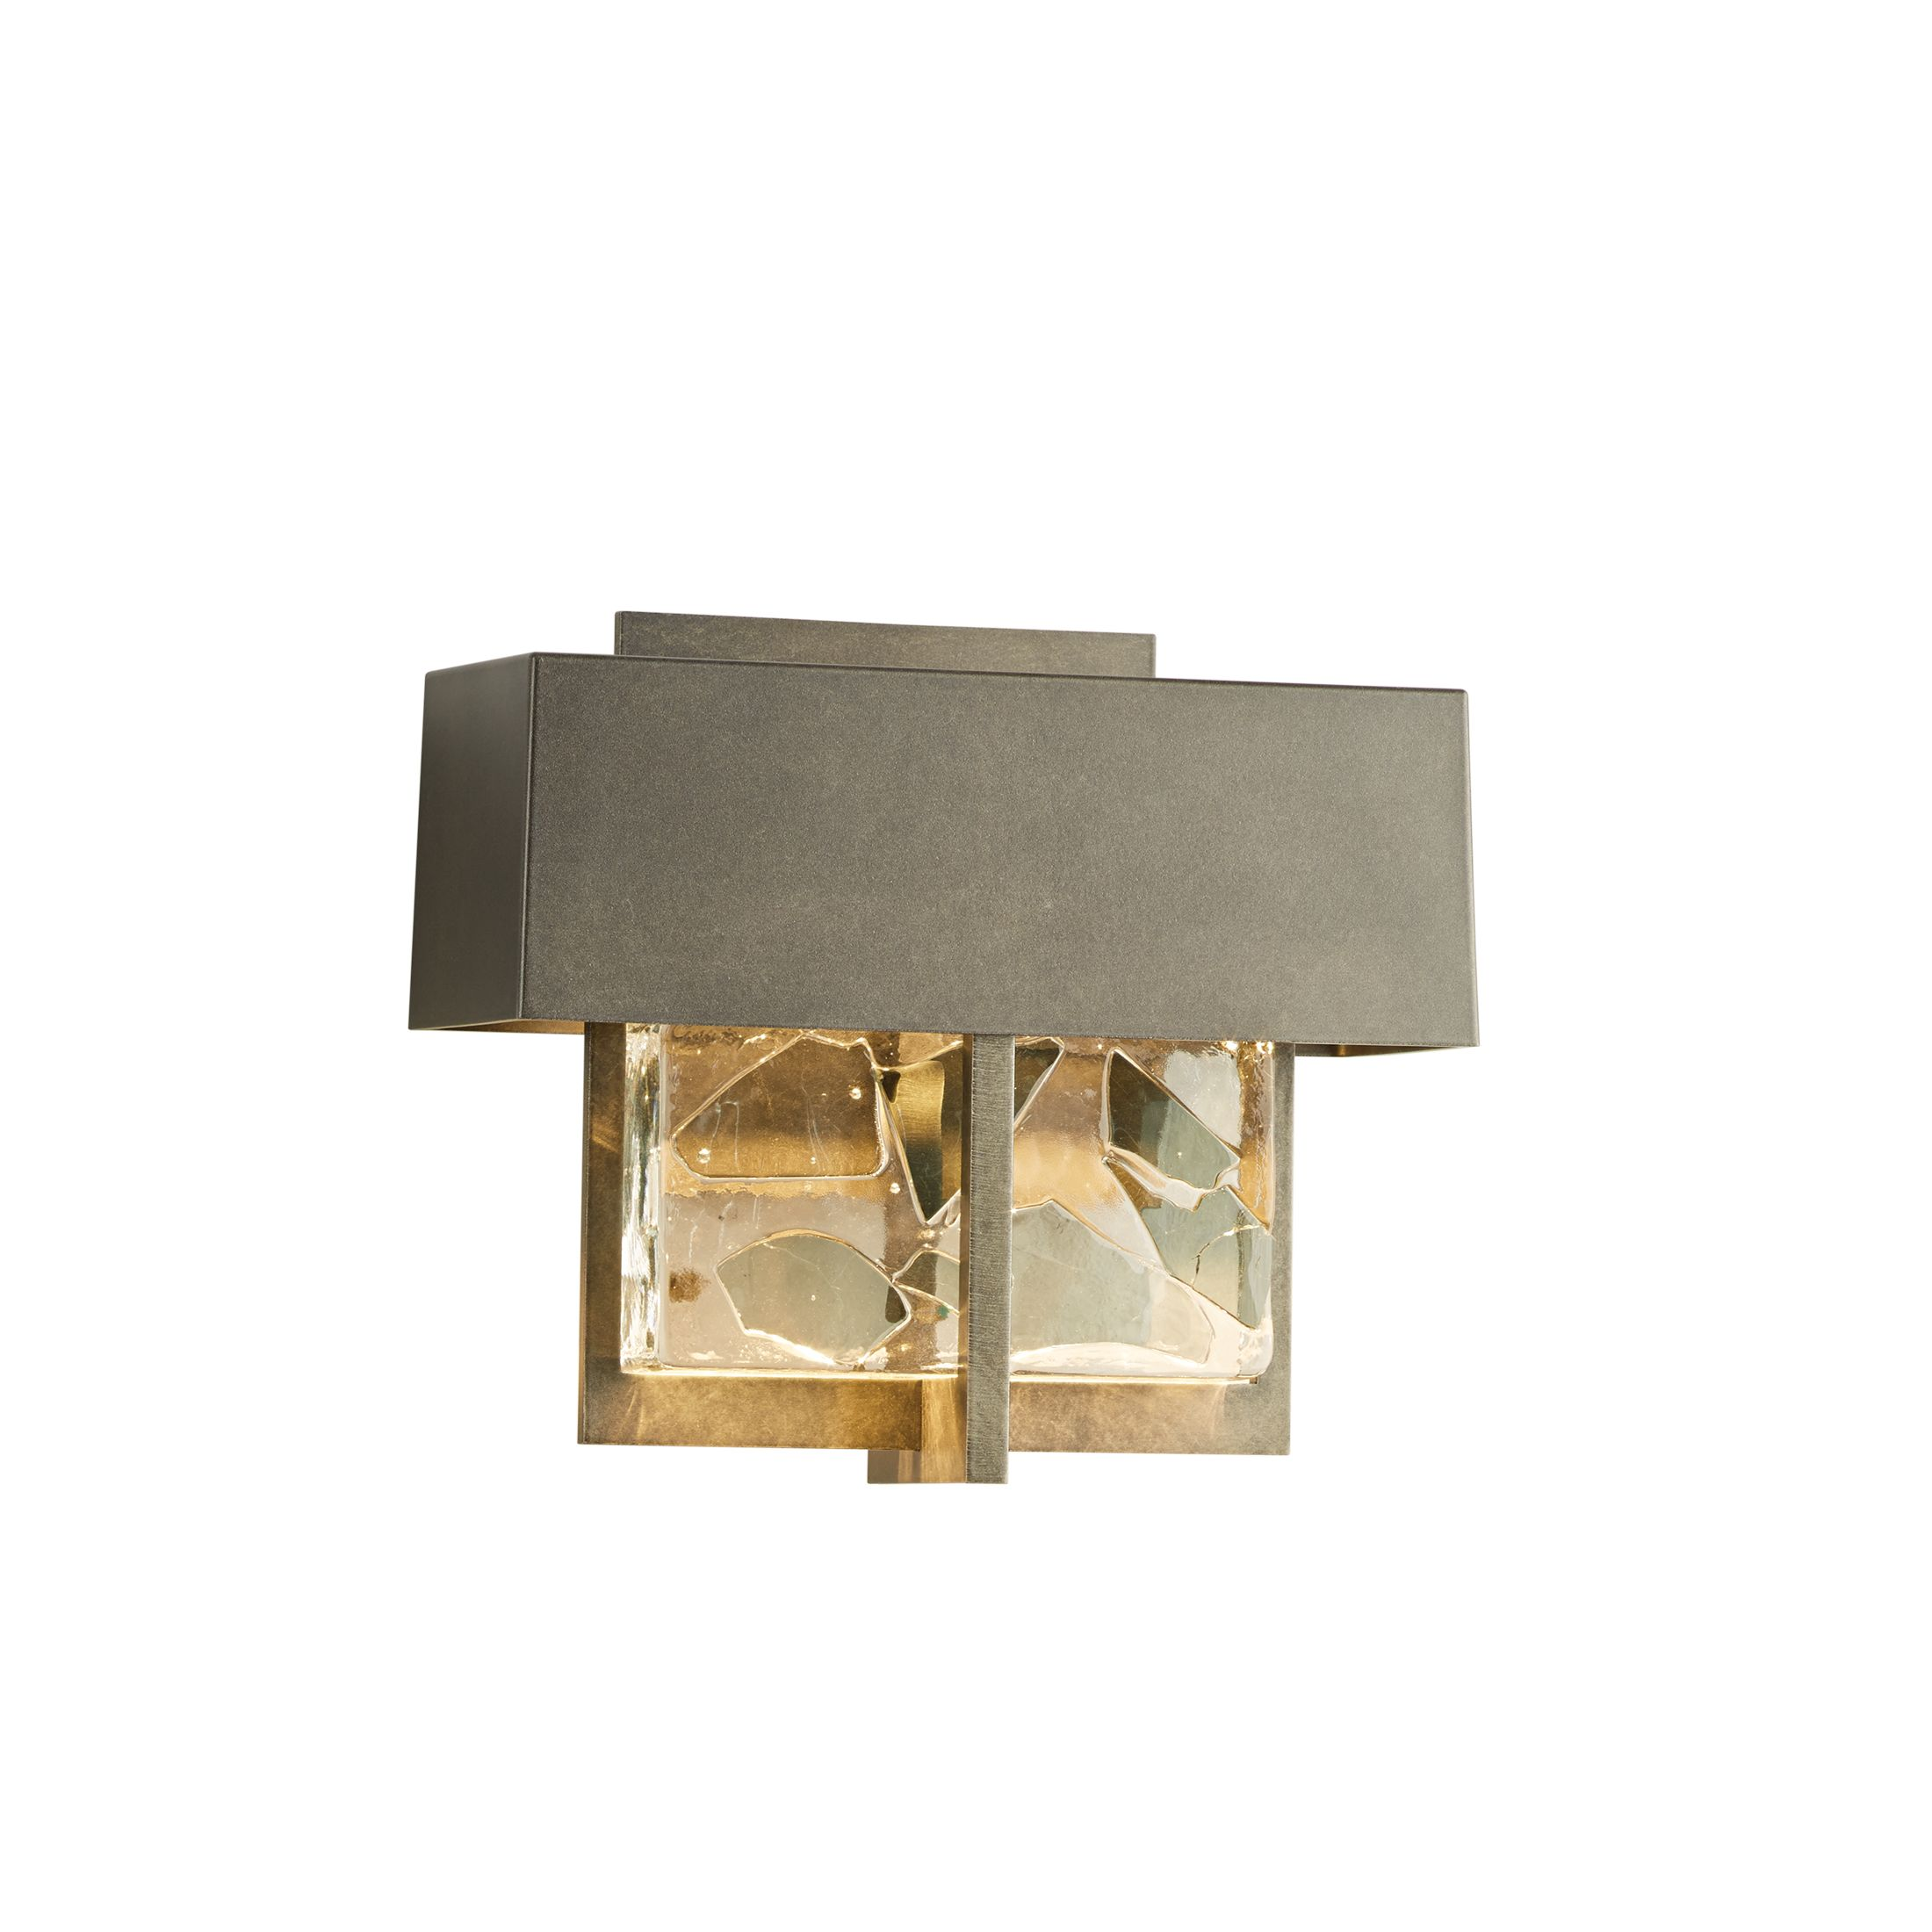 skt outdoor sconce product detail forge products hubbardton twilight